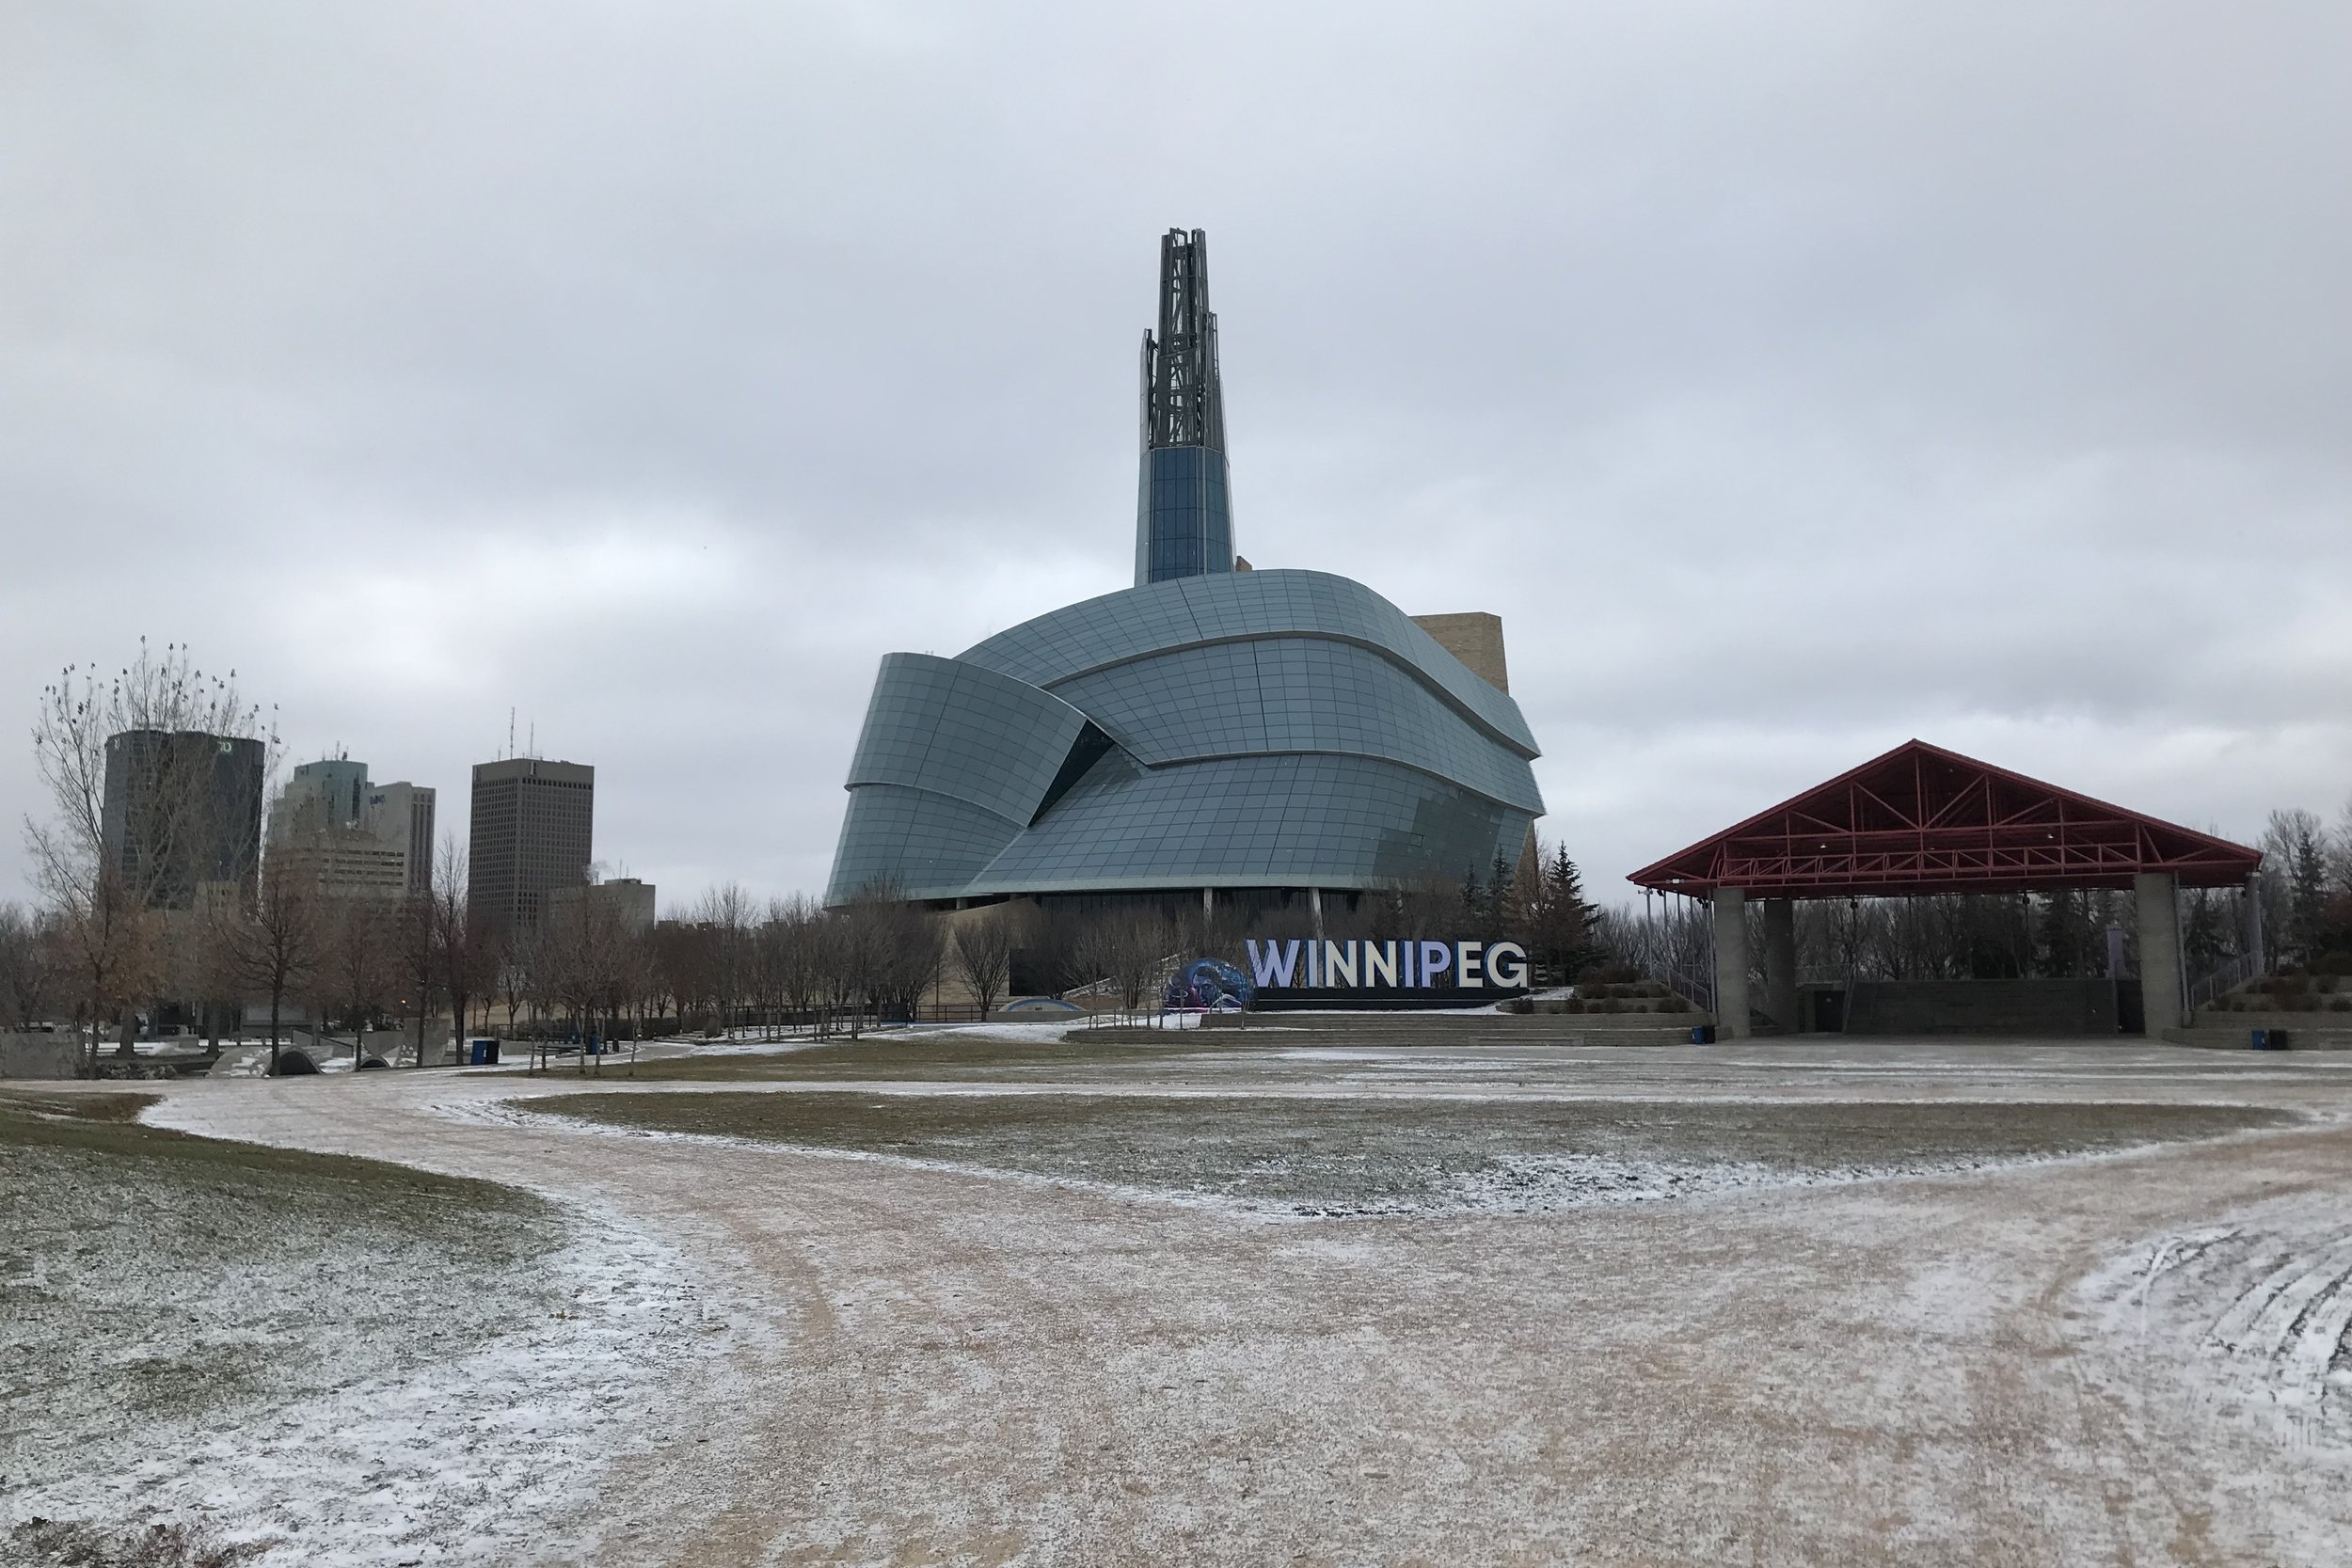 Winnipeg sign and the Canadian Human Rights Museum